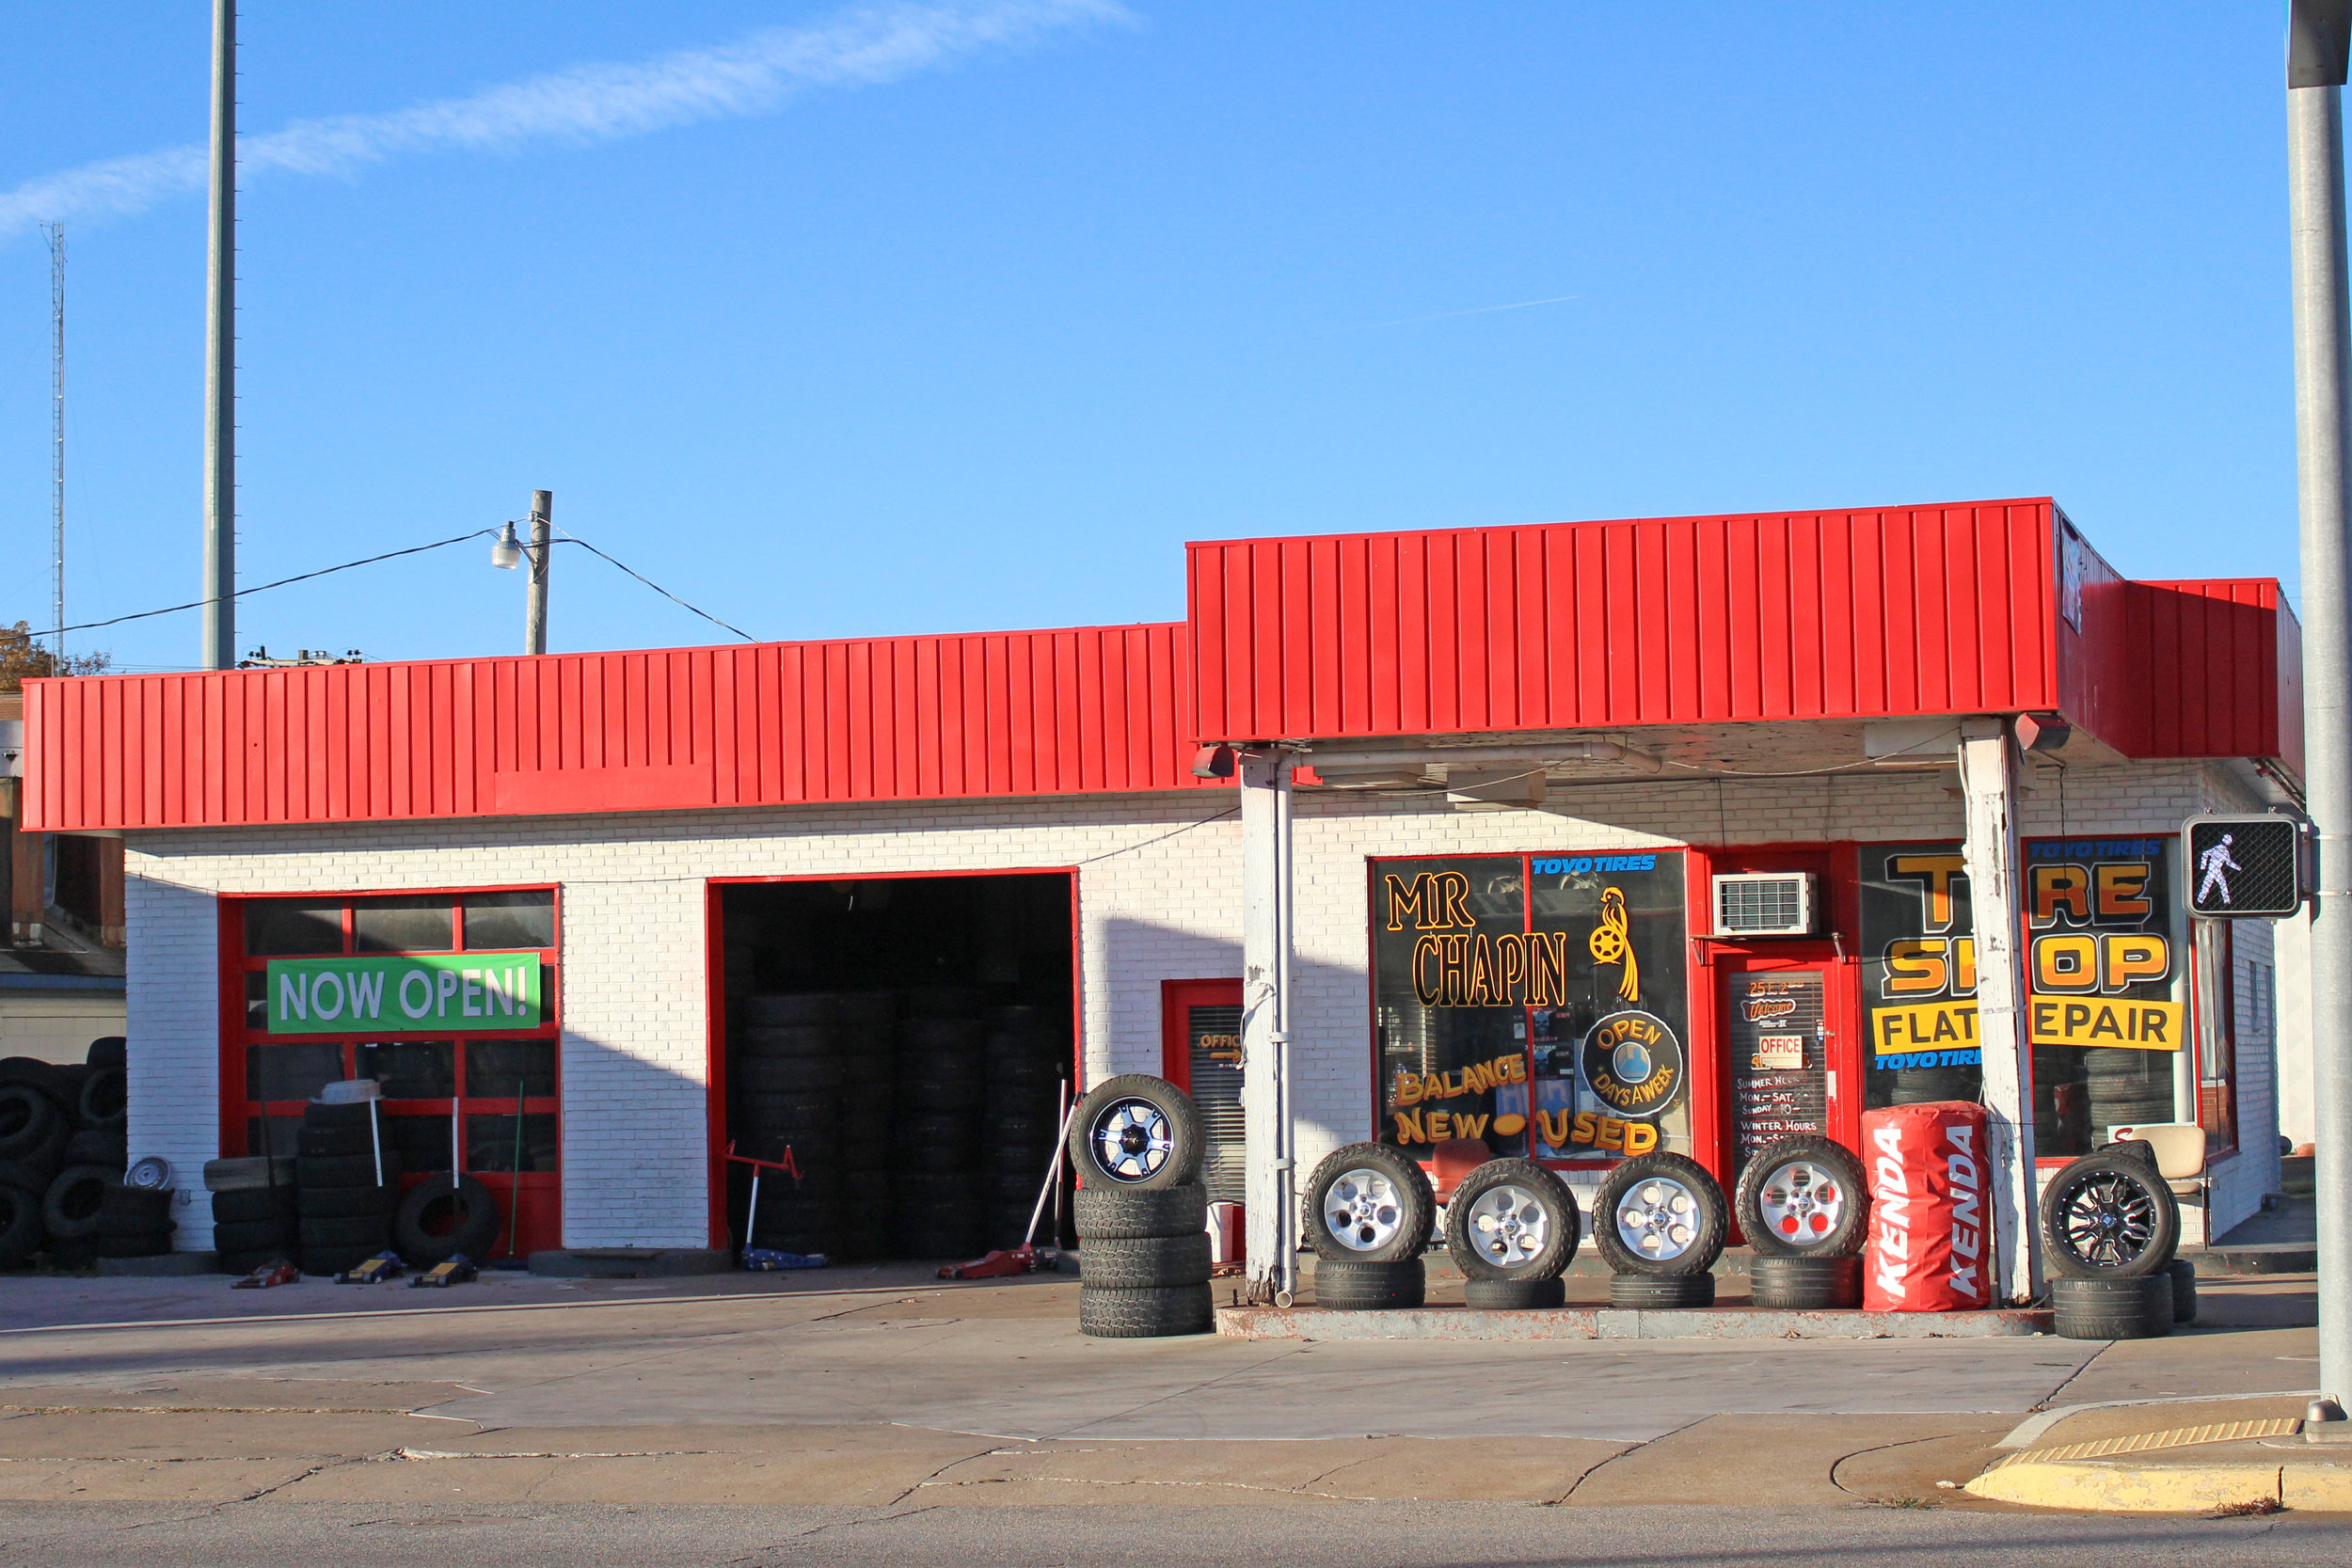 Mr. Chapin tire shop - downtown 125 east 2nd street